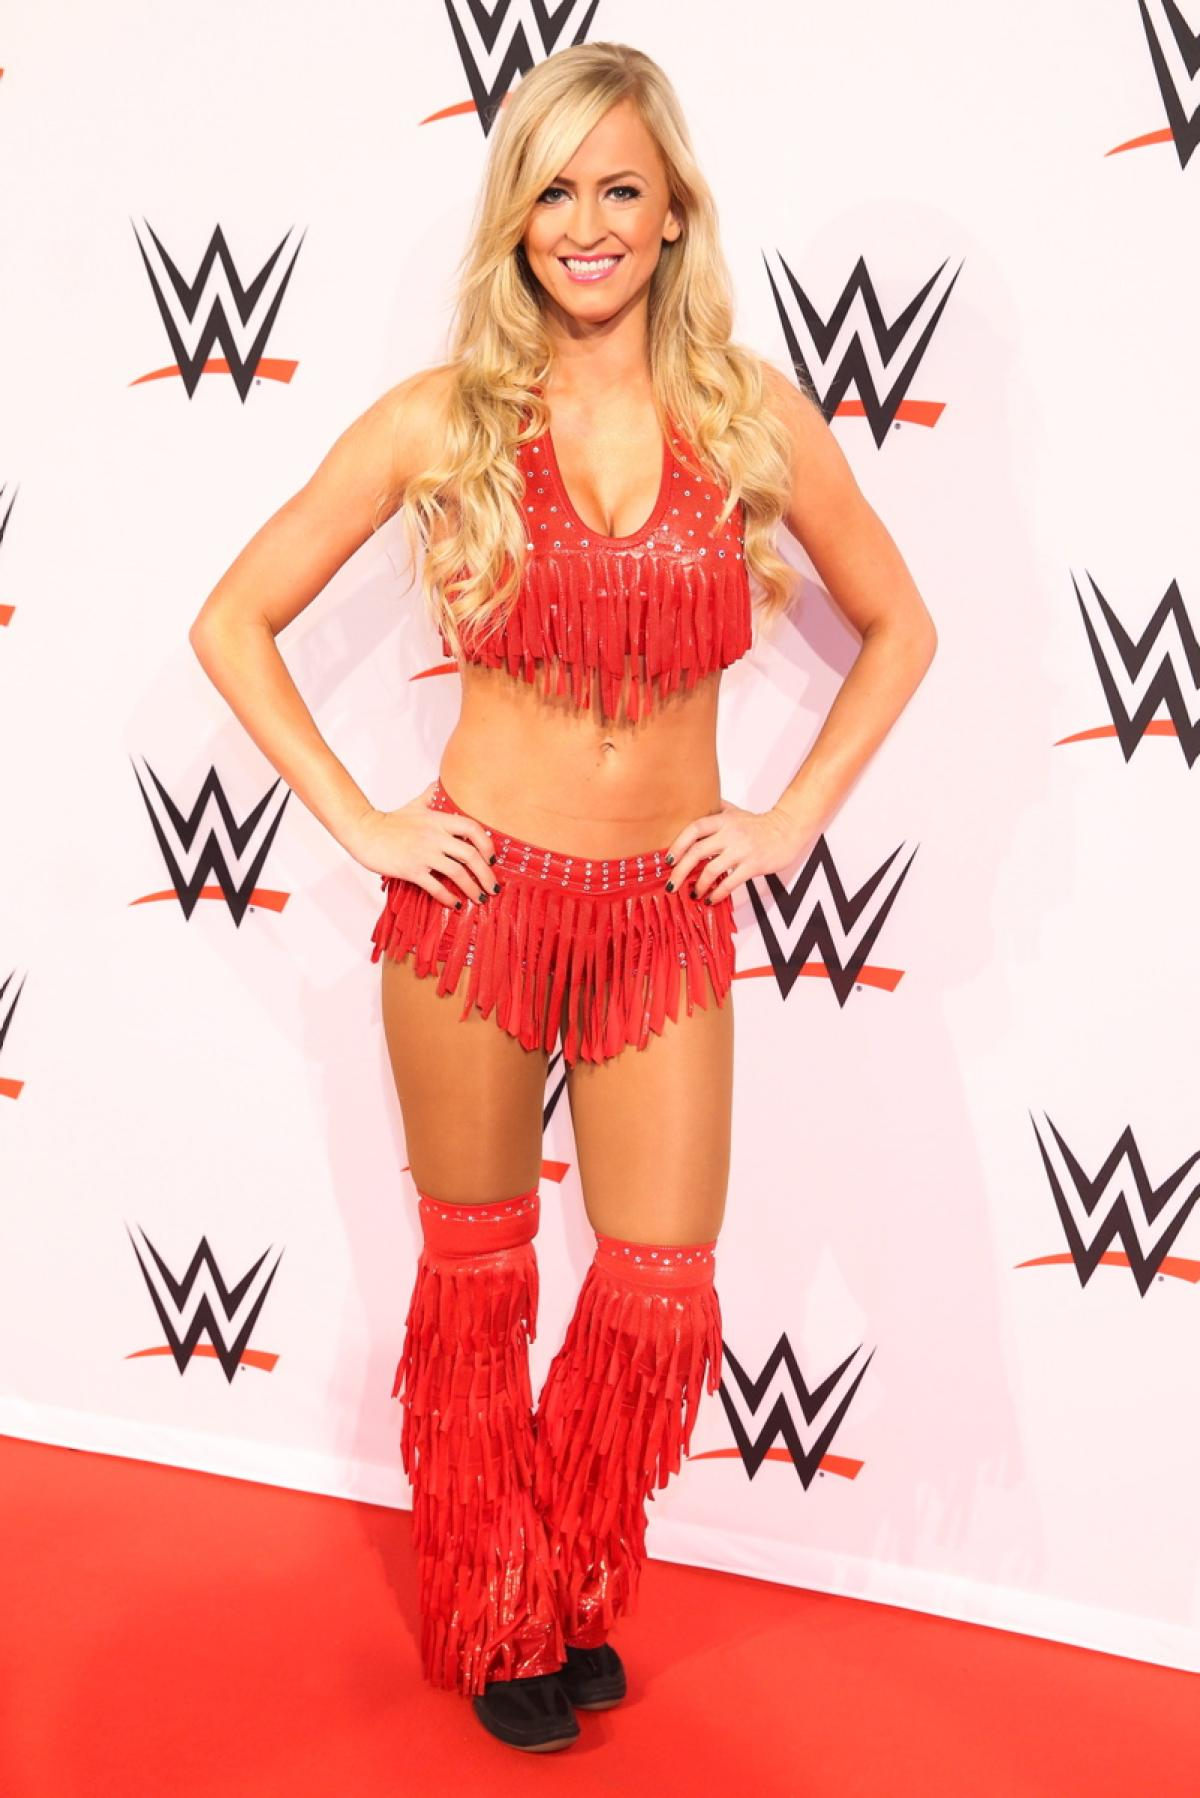 Summer Rae Dress